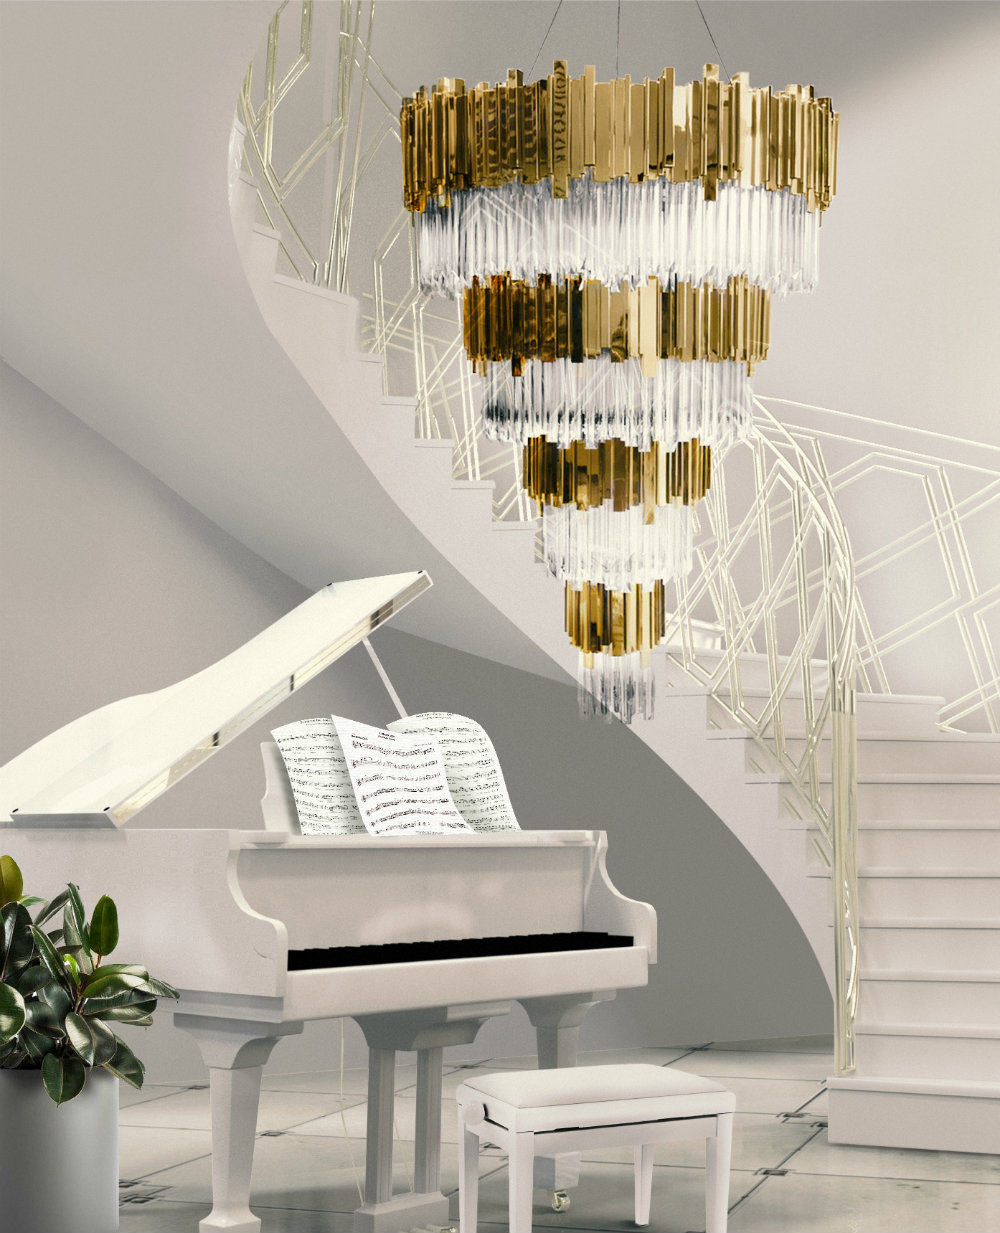 6 Luxurious Stairwell Designs You'll Love luxurious interiors Luxurious Interiors Inspired by Louis-Era French Design 6 Luxurious Stairwell Designs Youll Love 01 luxurious interiors Luxurious Interiors Inspired by Louis-Era French Design 6 Luxurious Stairwell Designs Youll Love 01